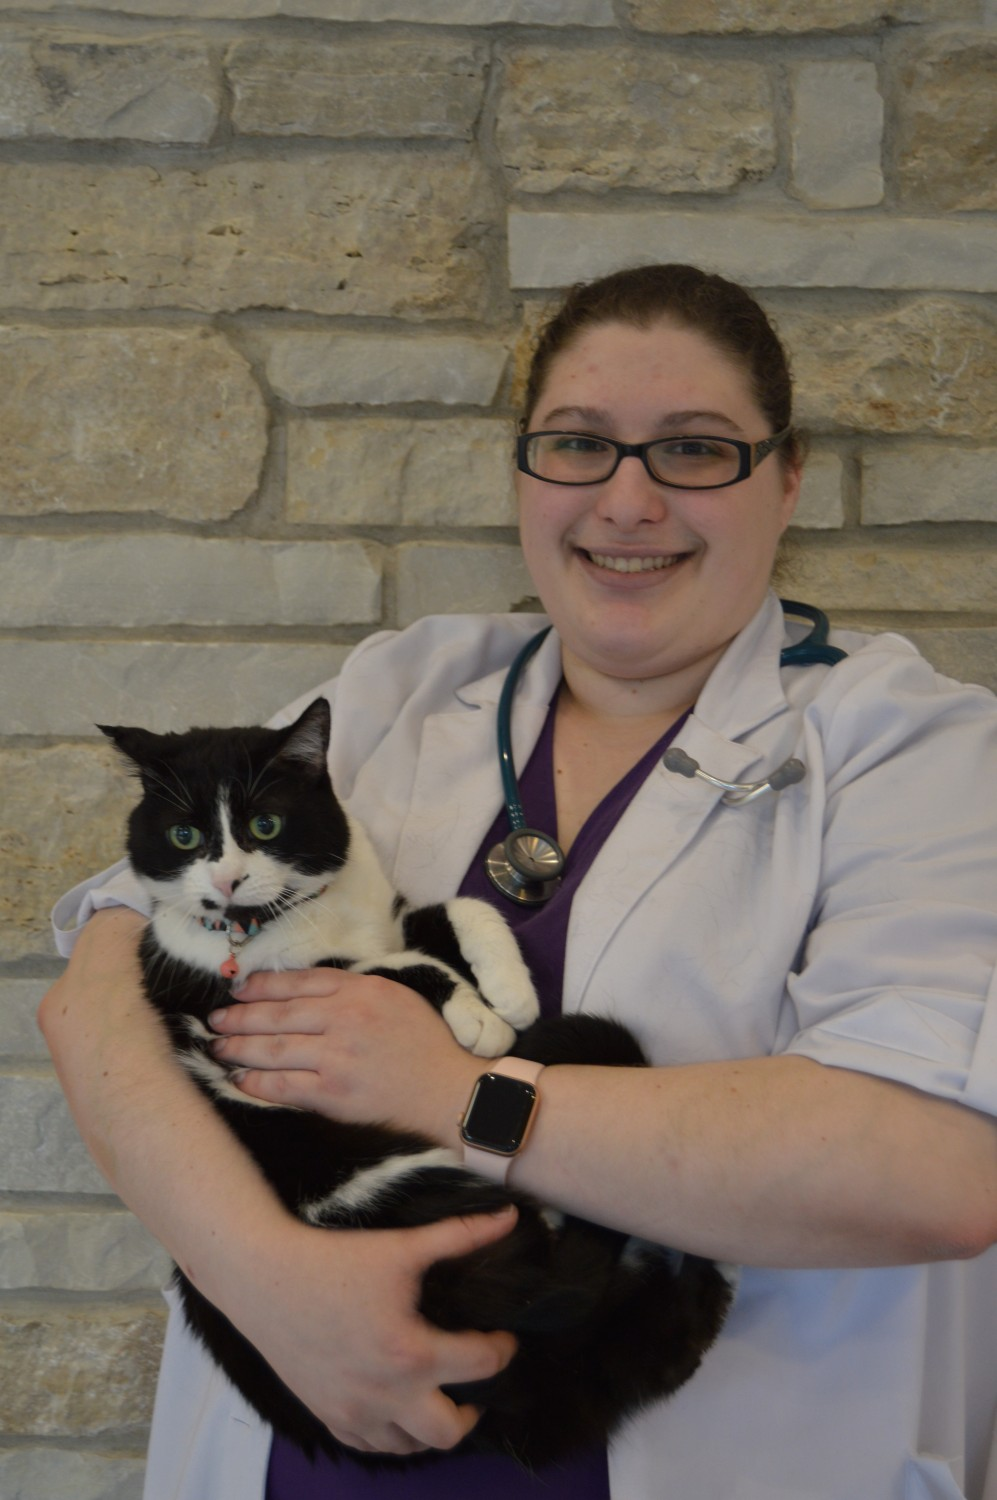 Dr. Levine Veterinarian Cary Grove Animal Hospital Cary, IL